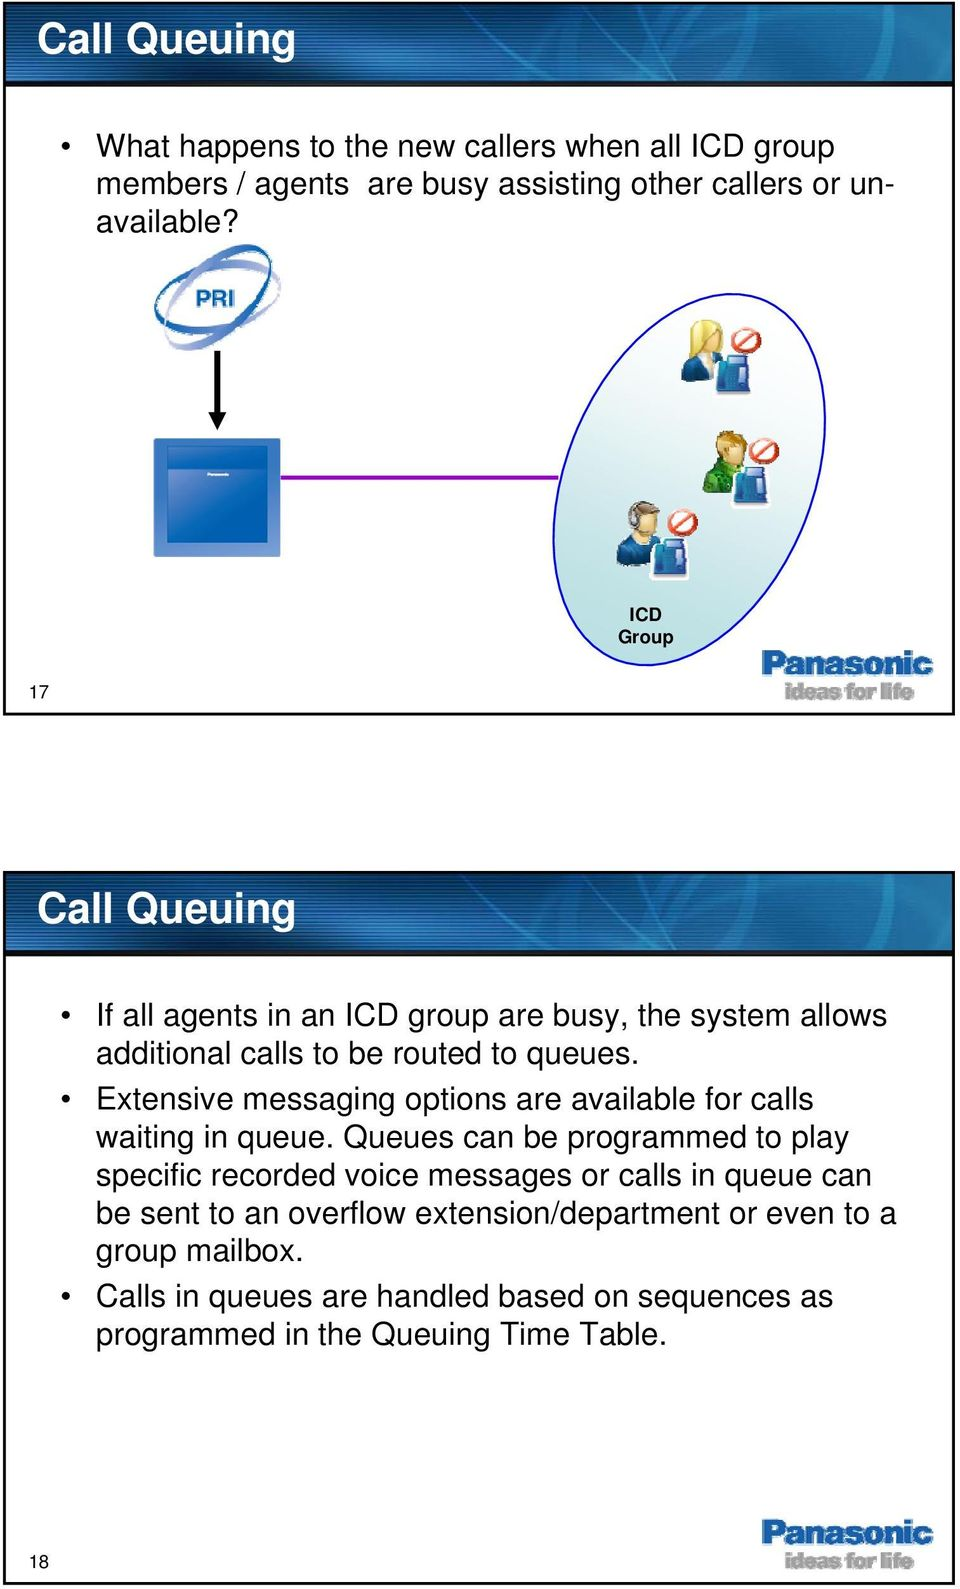 Extensive messaging options are available for calls waiting in queue.